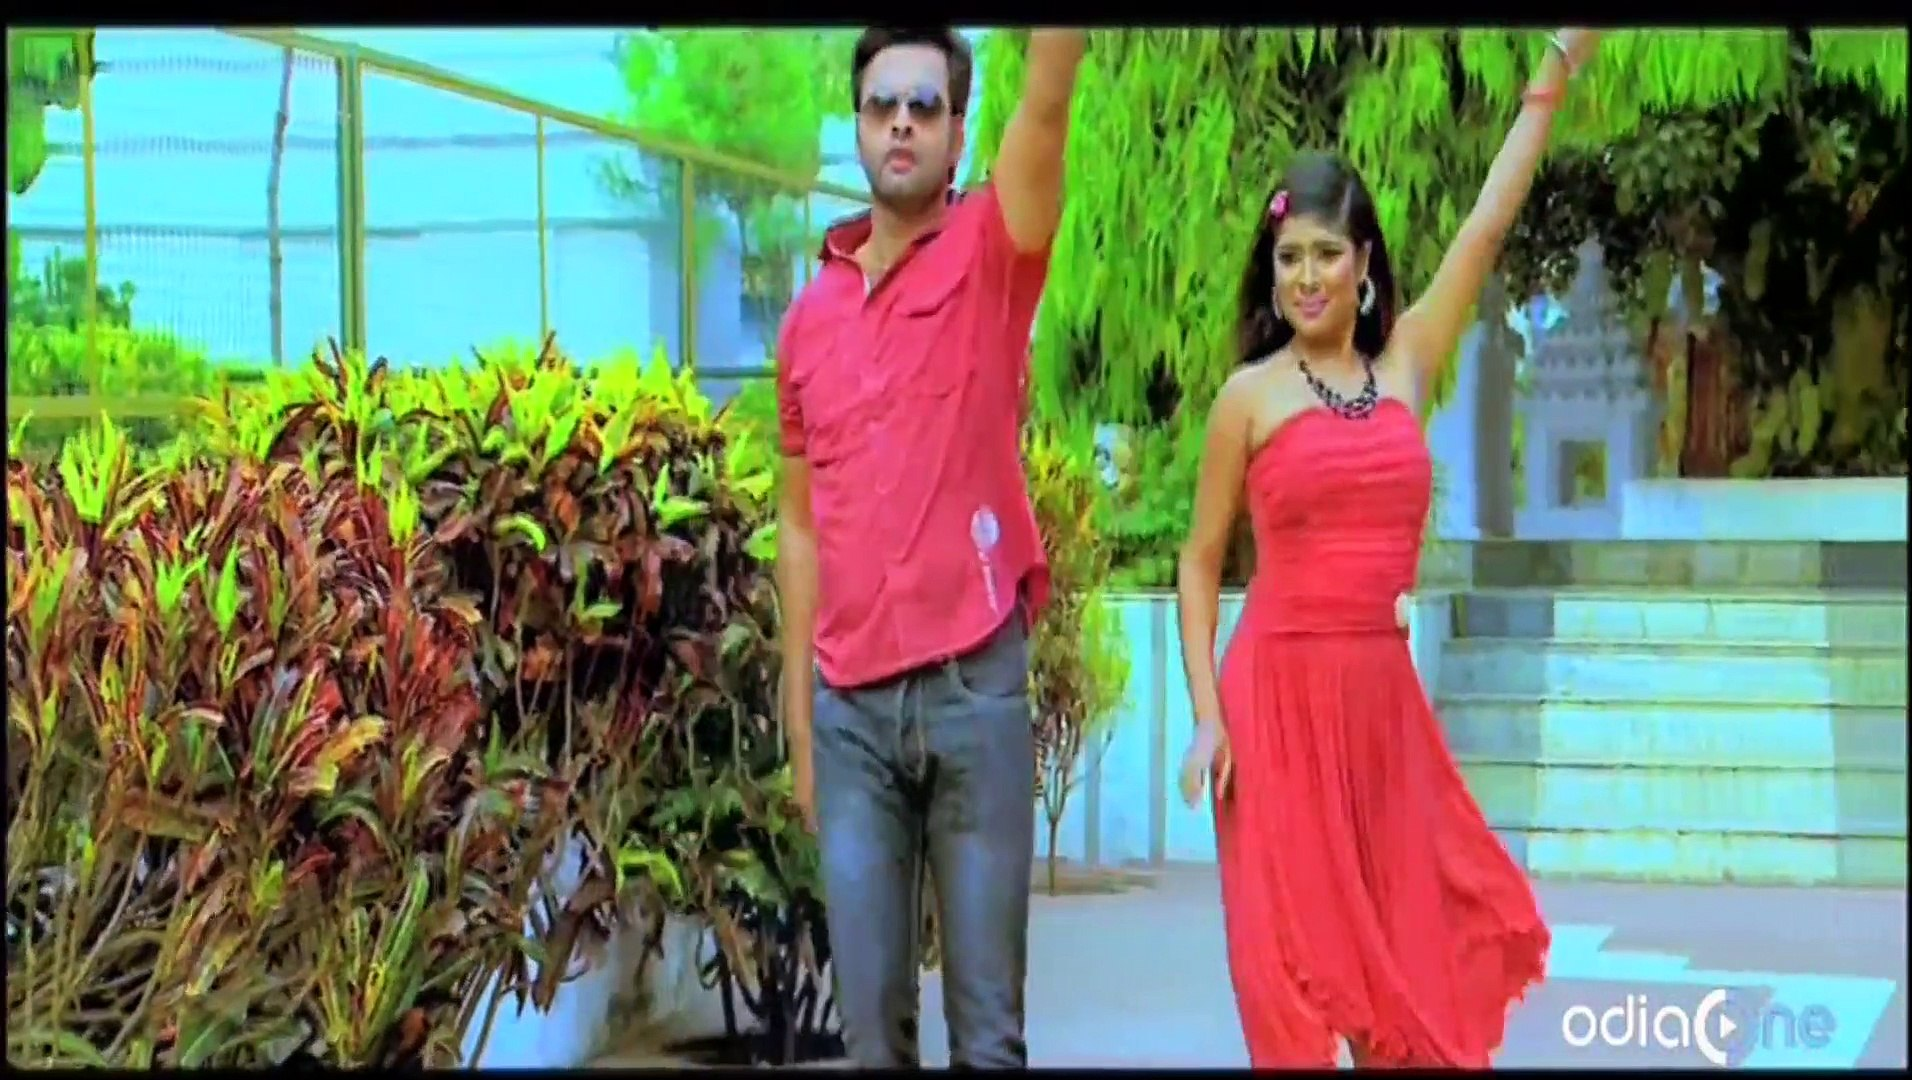 Mo Swapnaru Full Video Song -  My First Love - Bulu, Jeena - Odia Movie Songs -  Odia Video